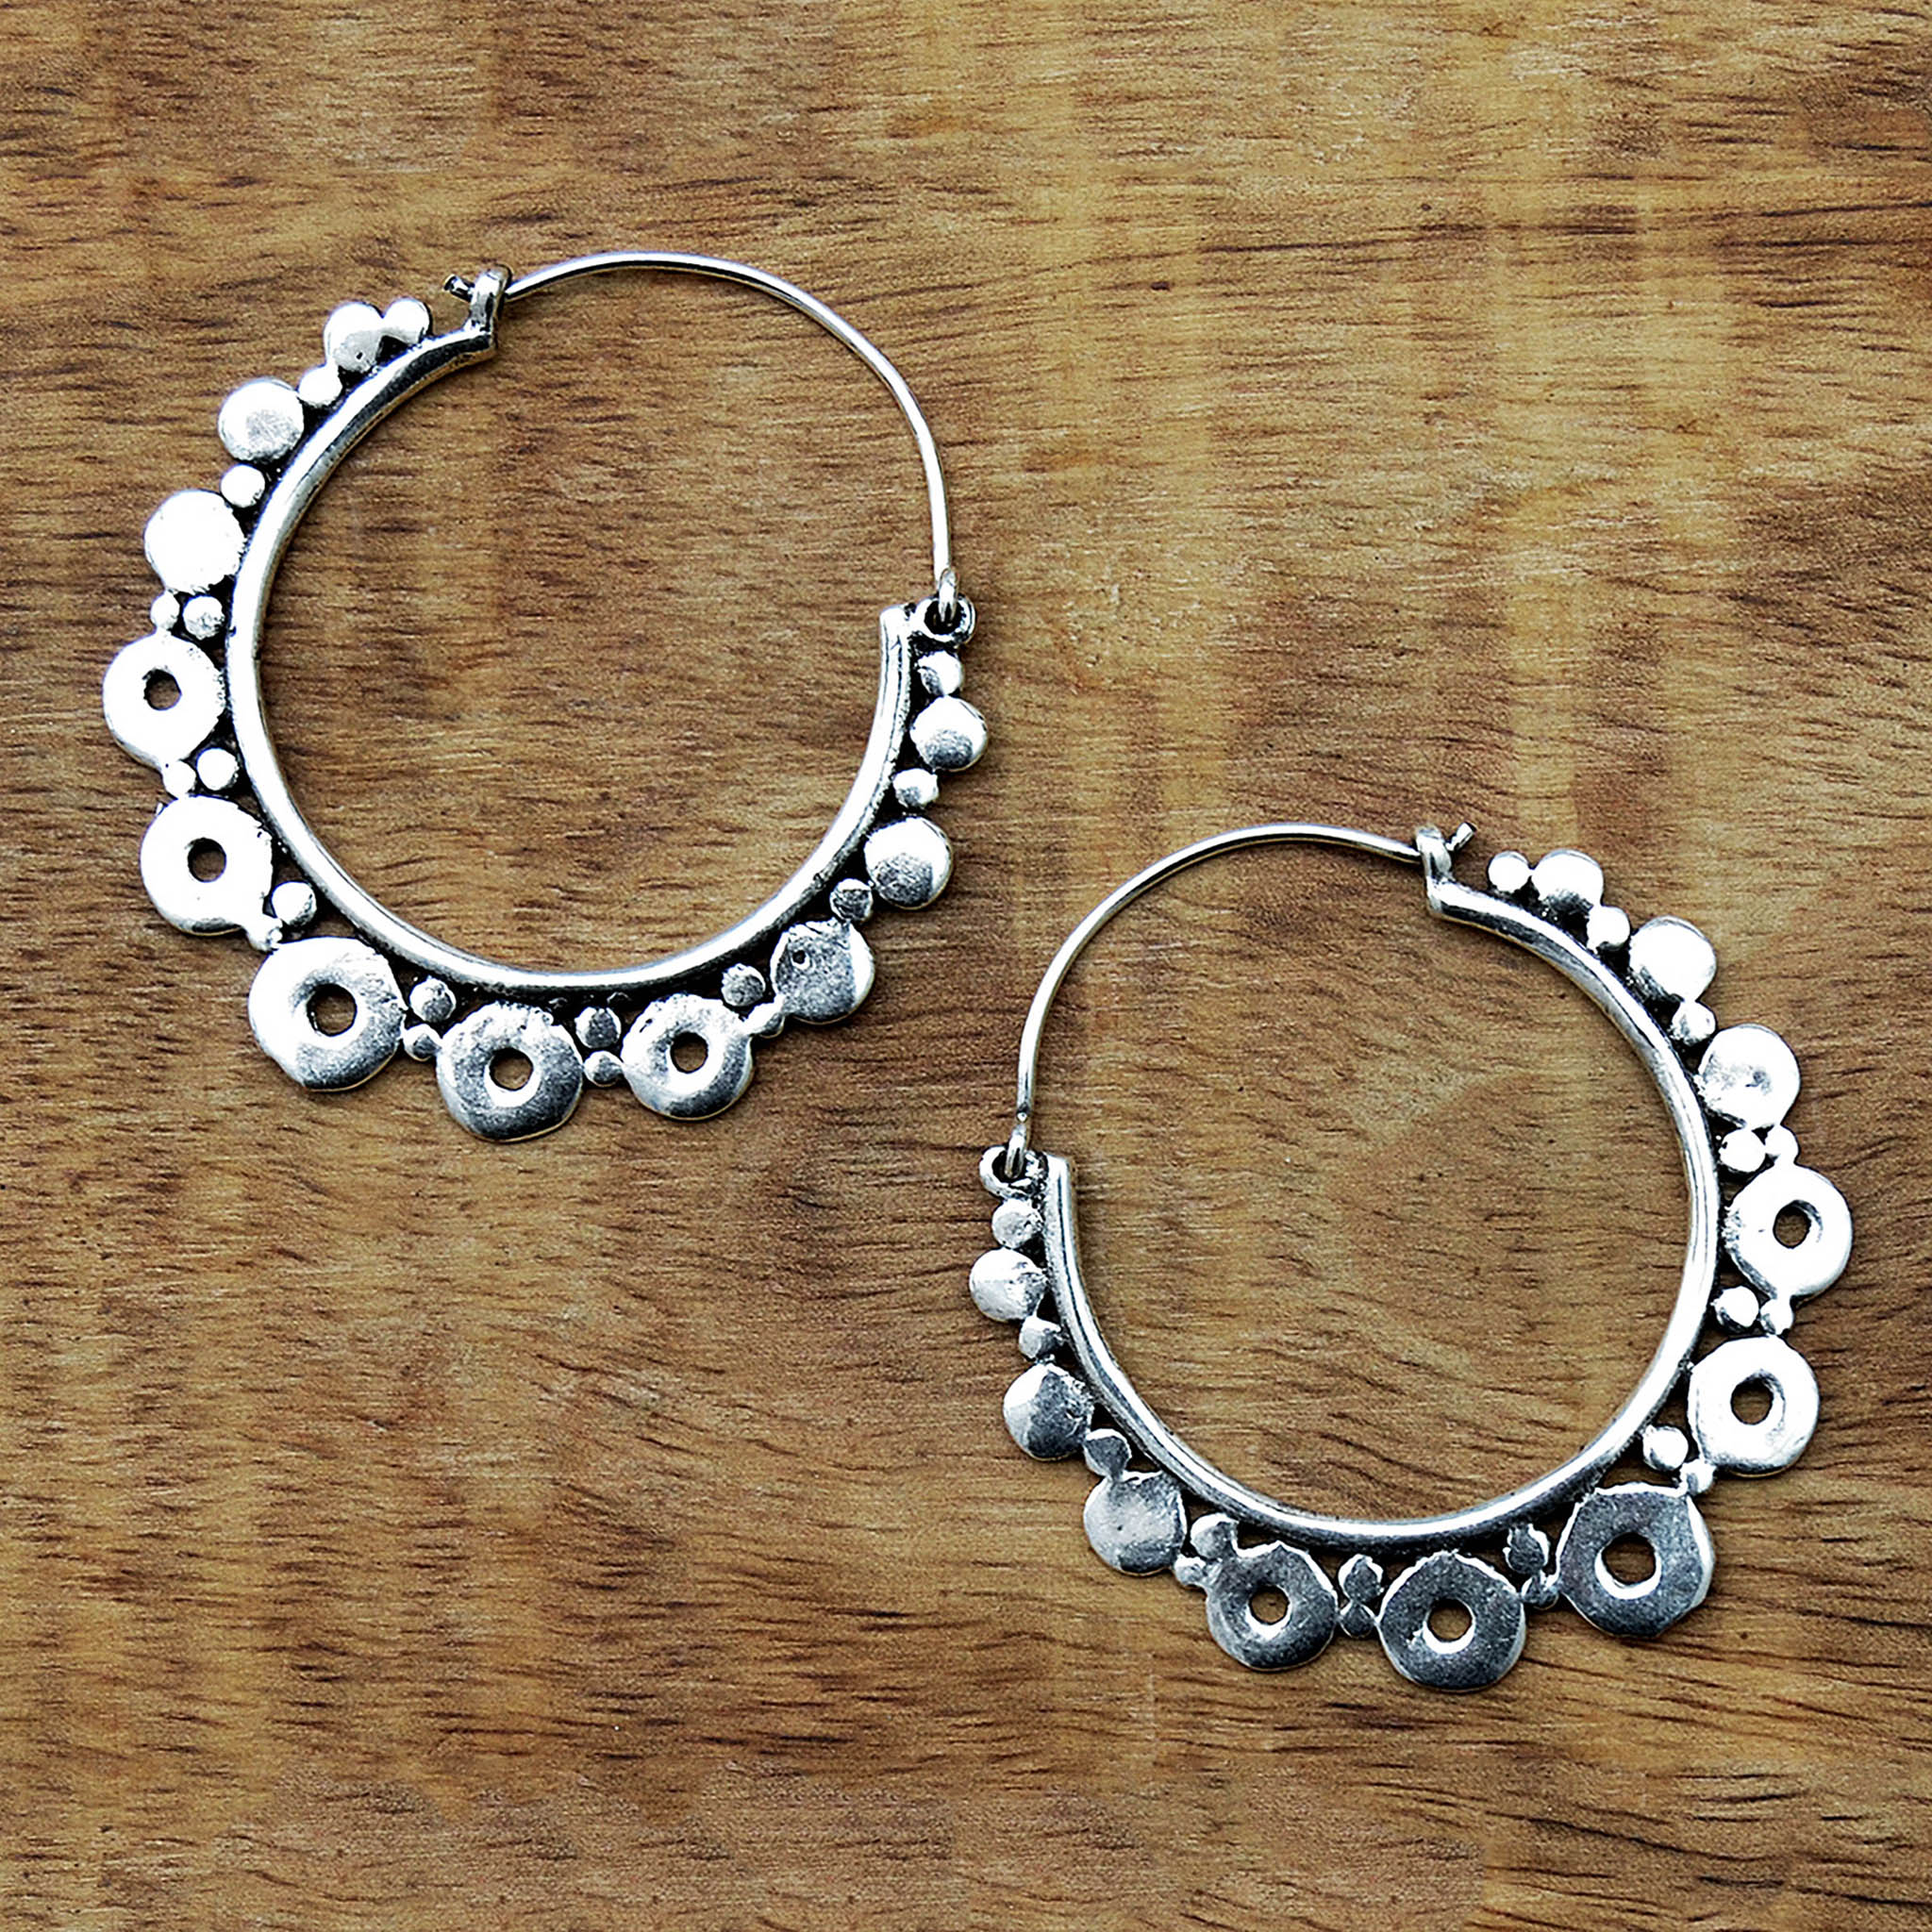 Silver yoga hoop earrings